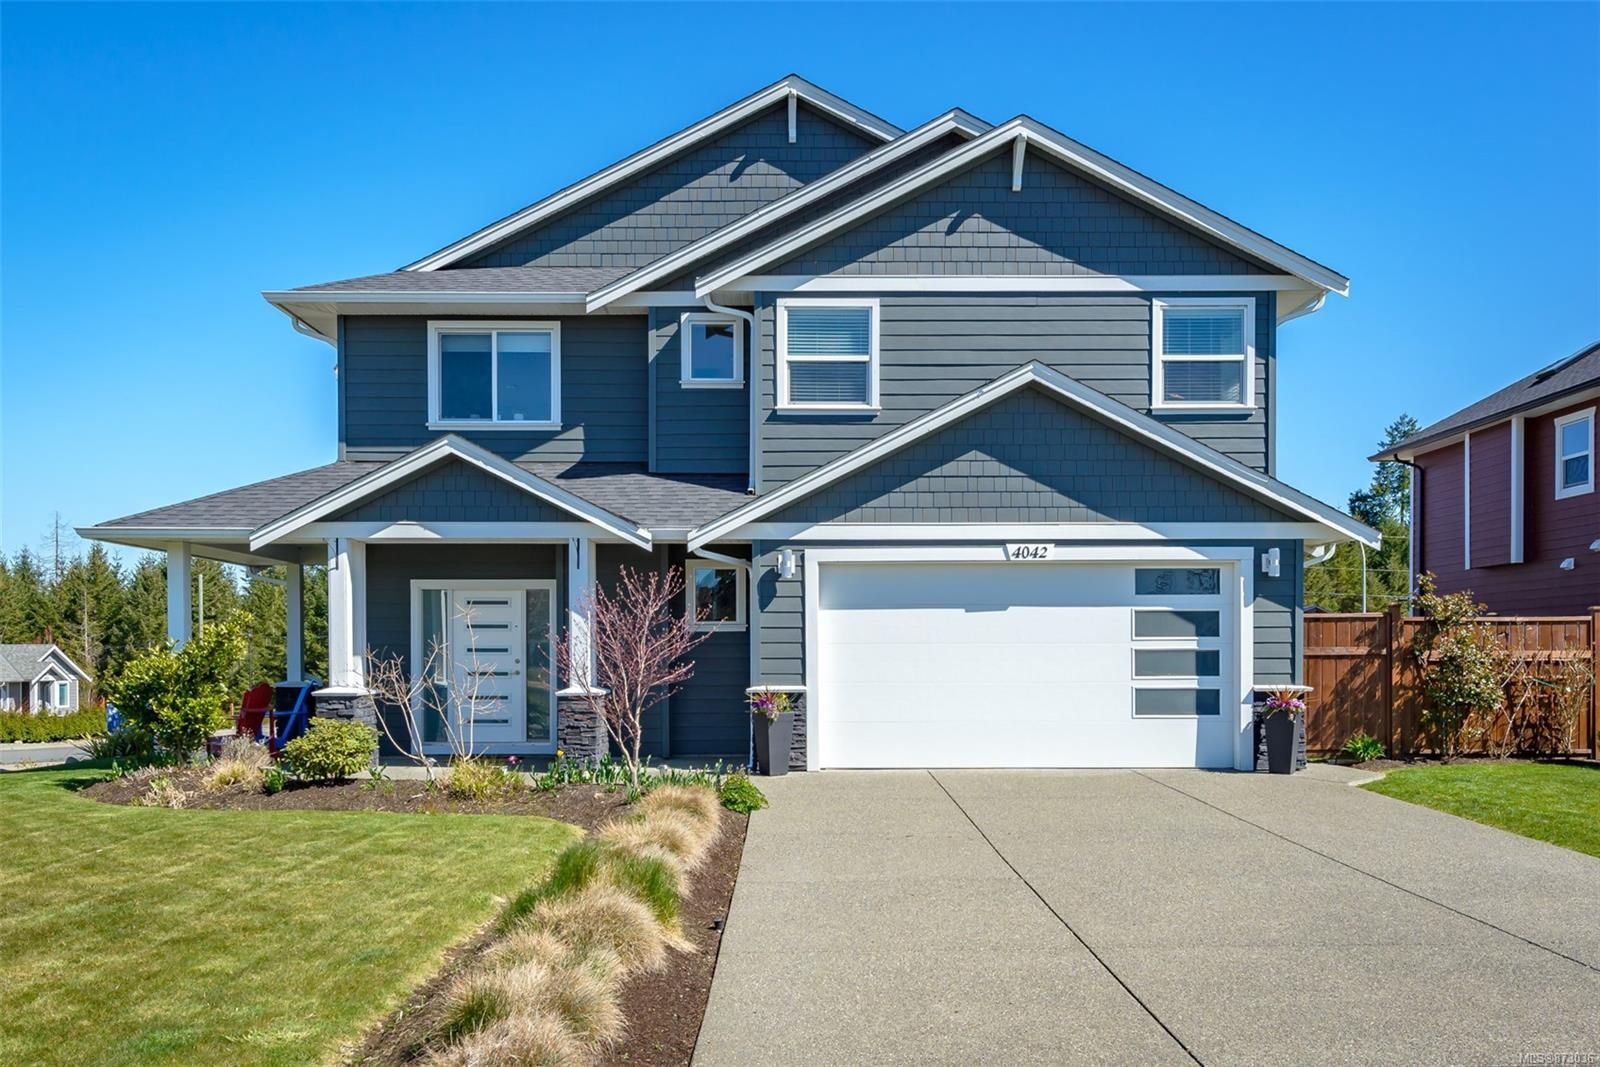 Main Photo: 4042 Southwalk Dr in : CV Courtenay City House for sale (Comox Valley)  : MLS®# 873036